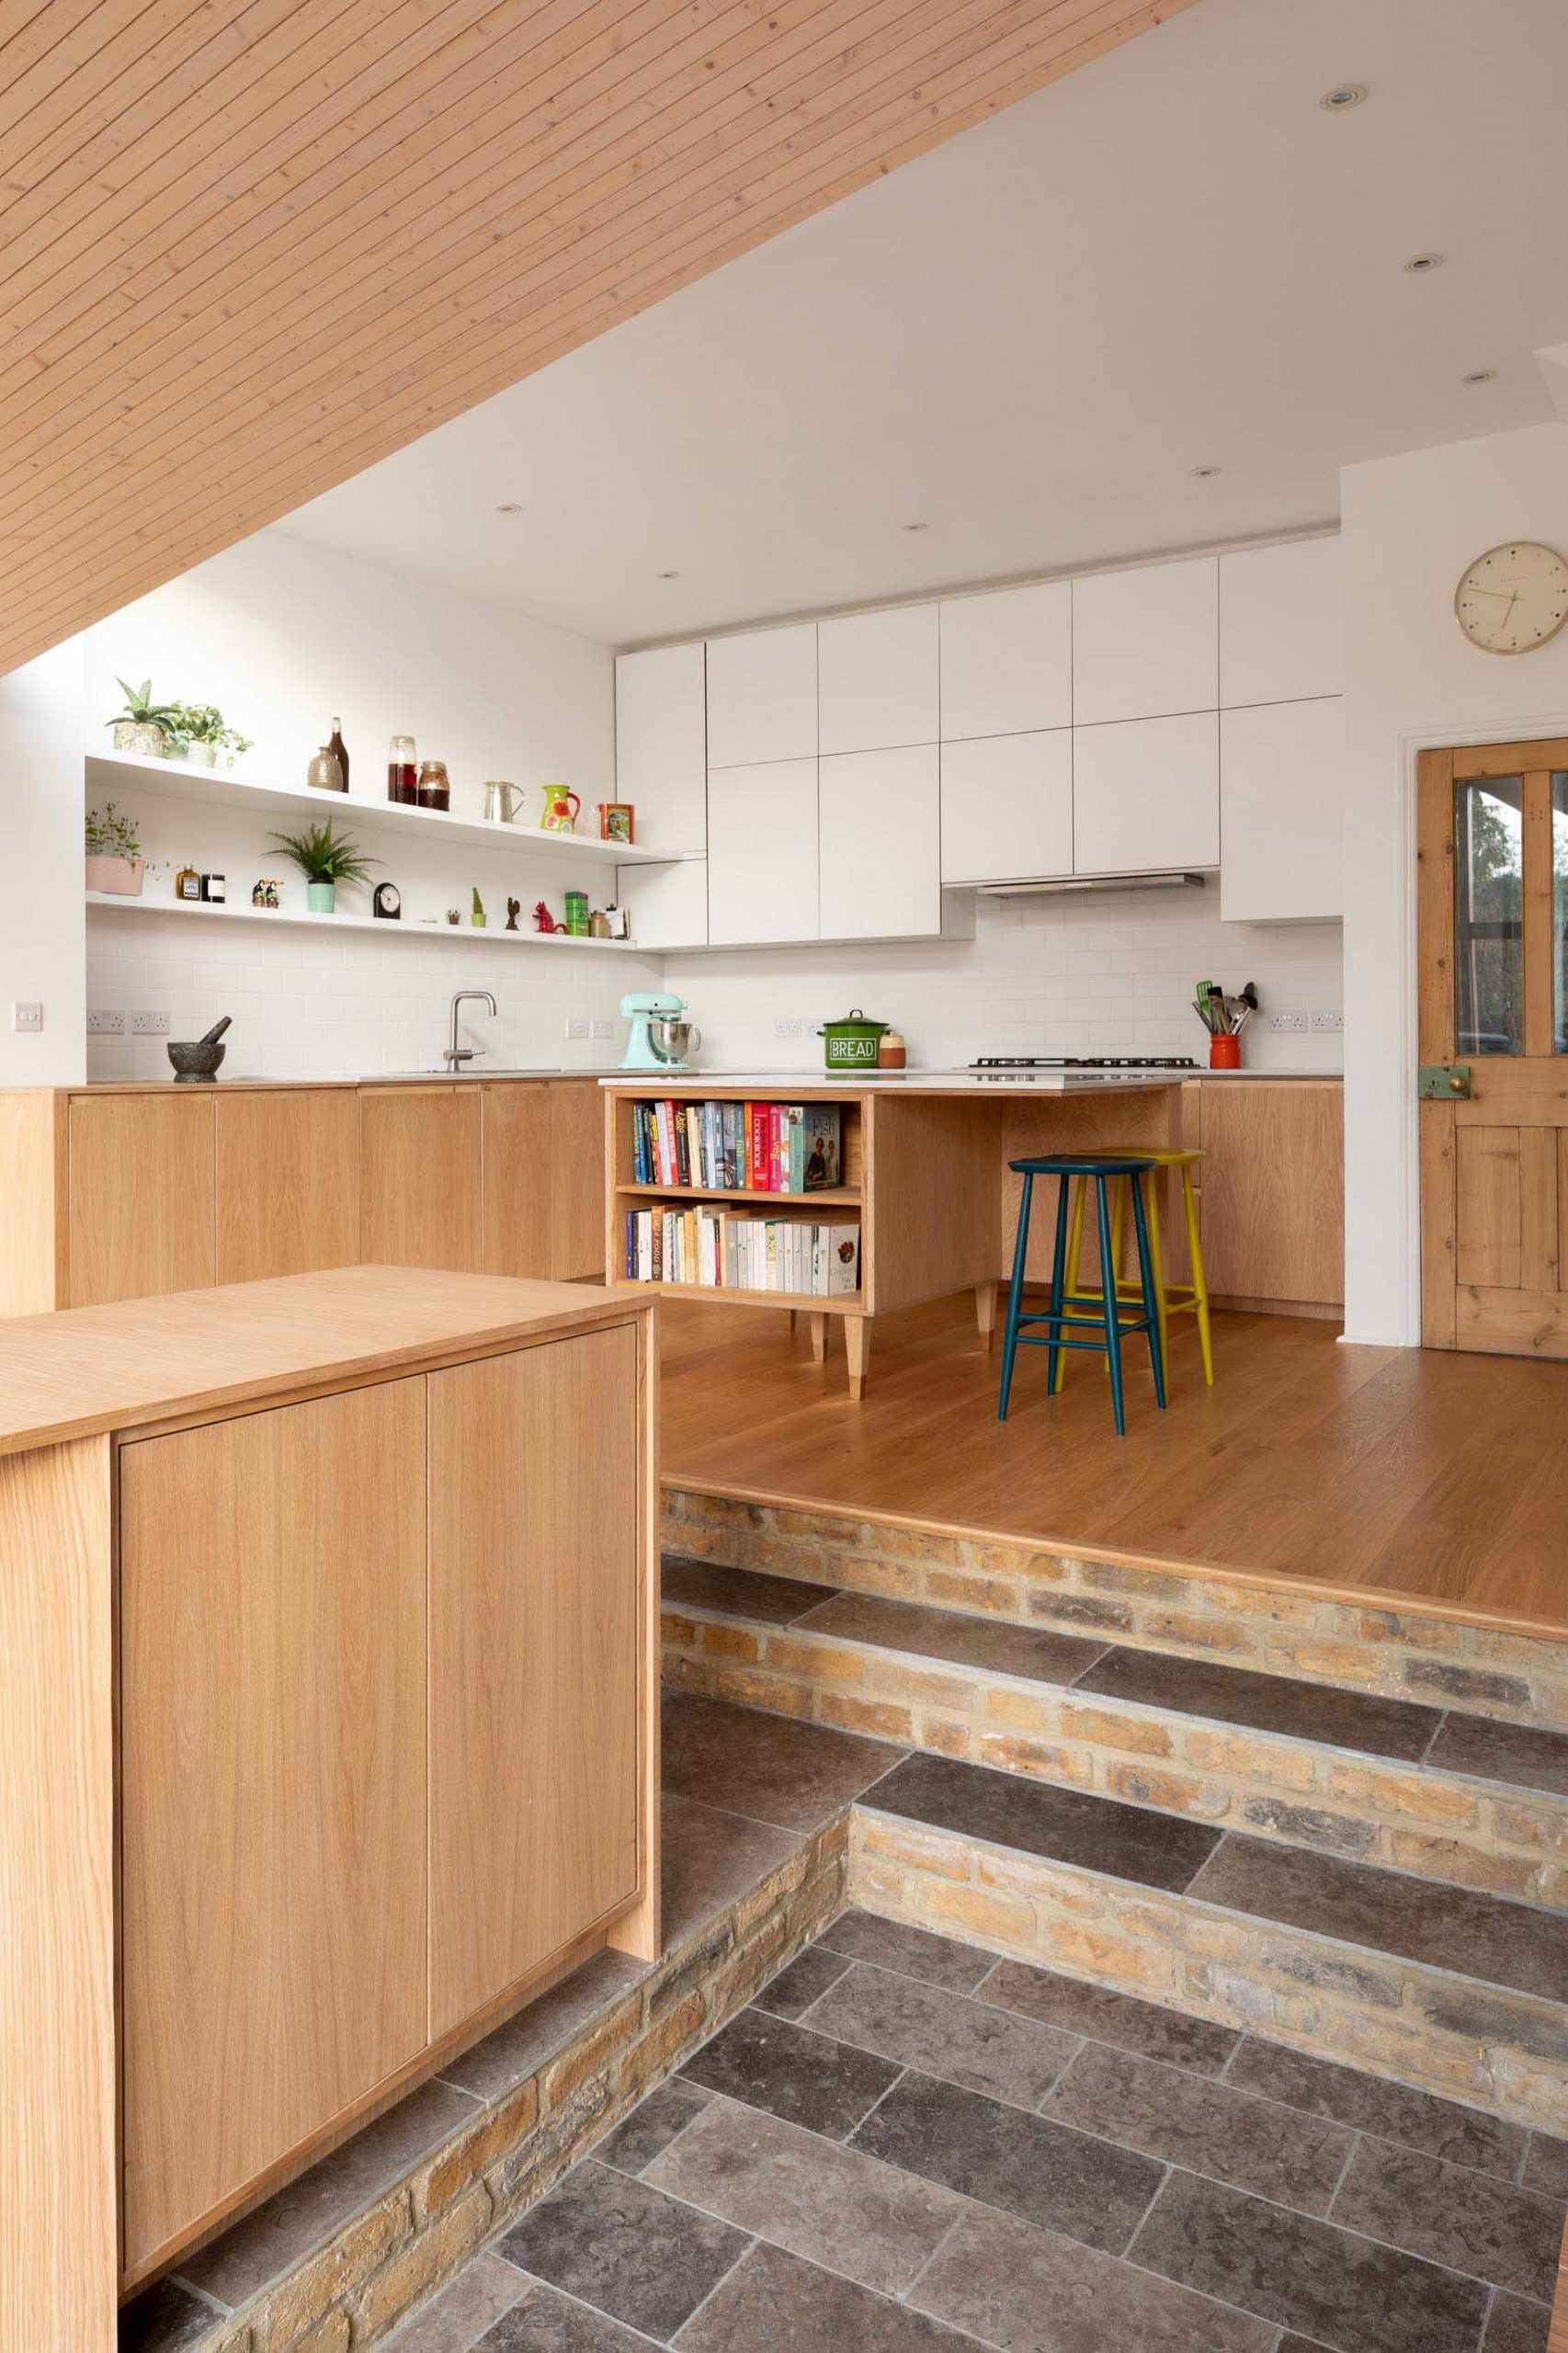 A contemporary kitchen with minimalist white cabinets that fill the wall, open white shelving, a small island with recipe book storage, and lower wood cabinets.